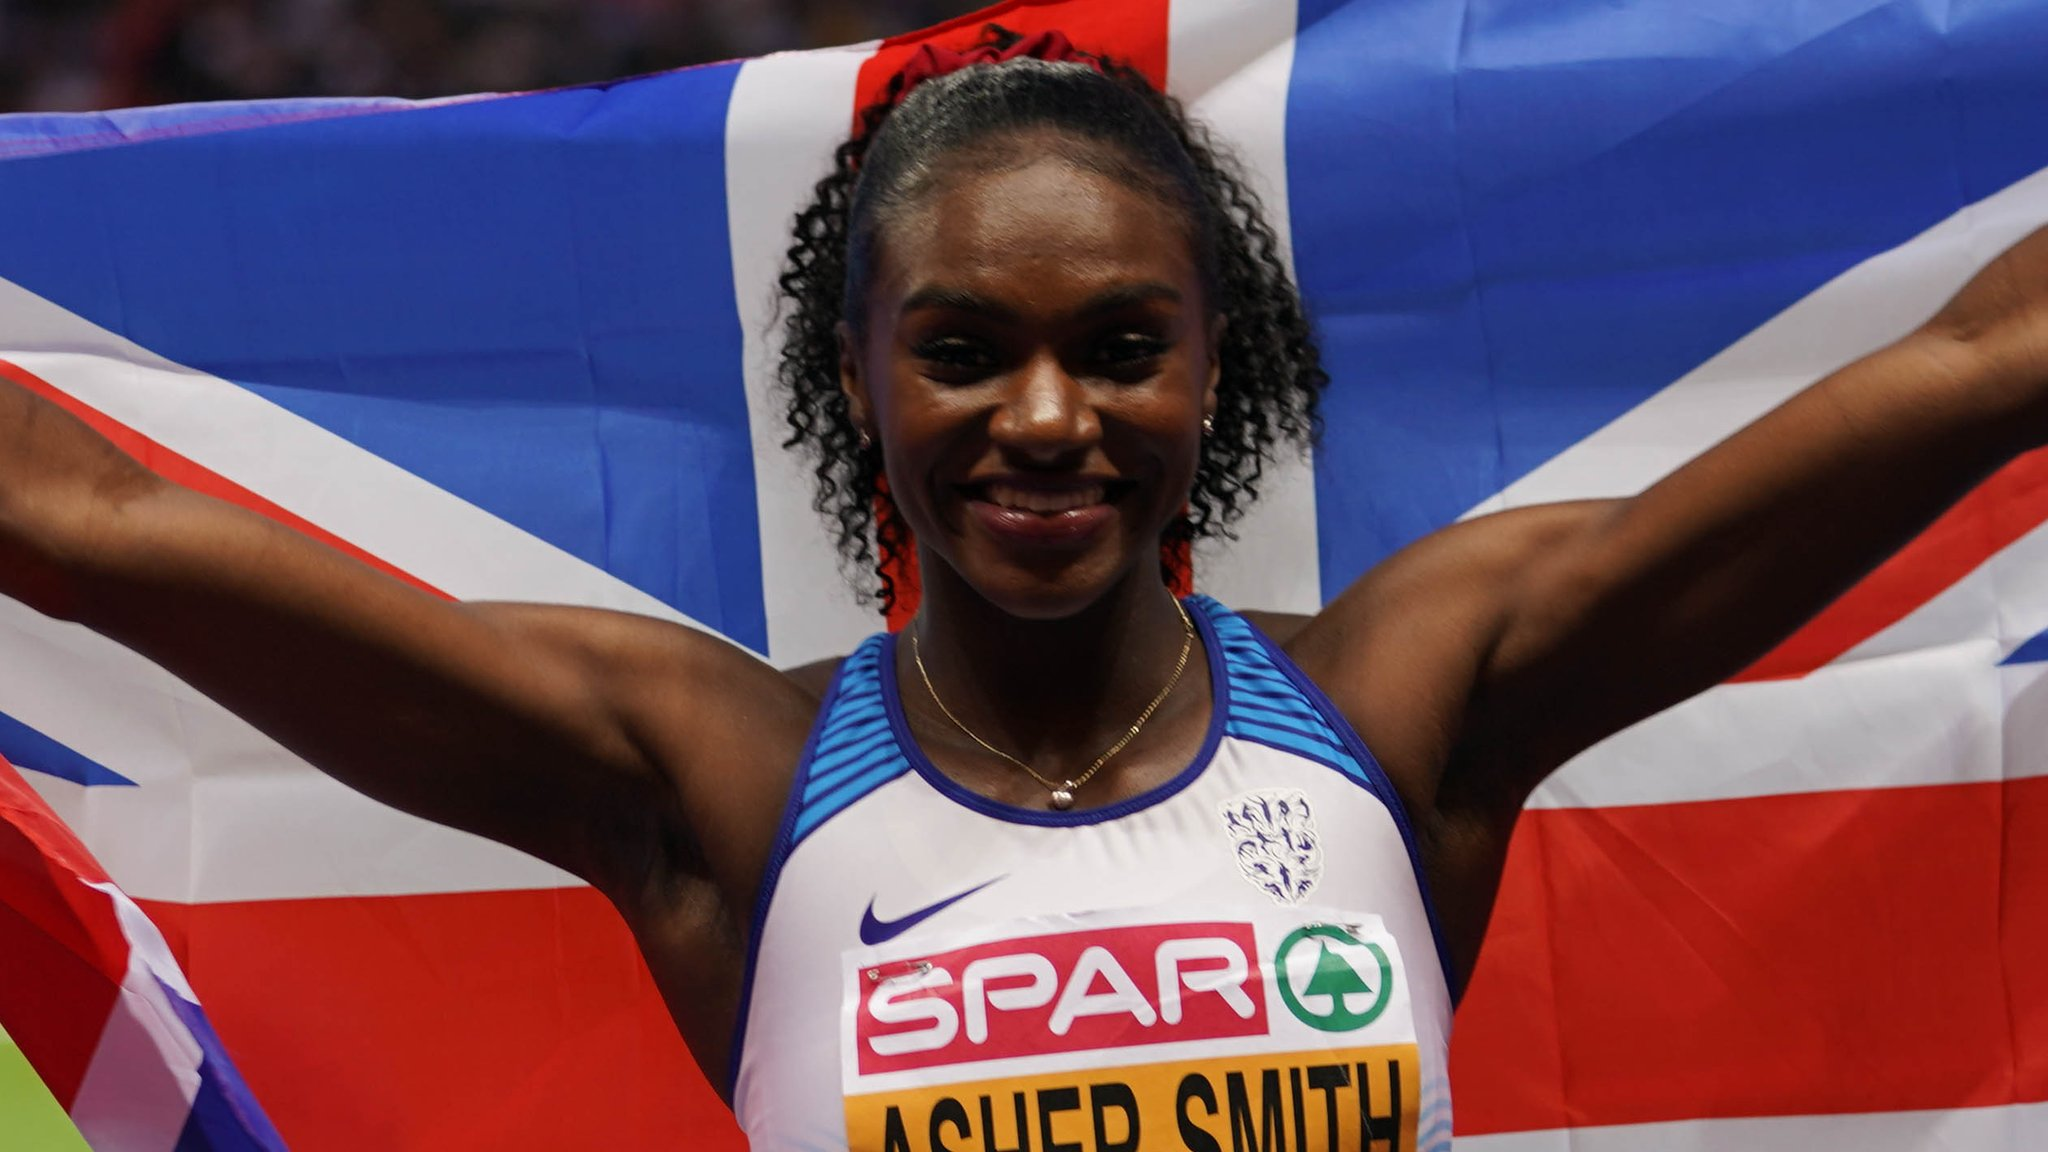 Asher-Smith named on Female Athlete of the Year shortlist